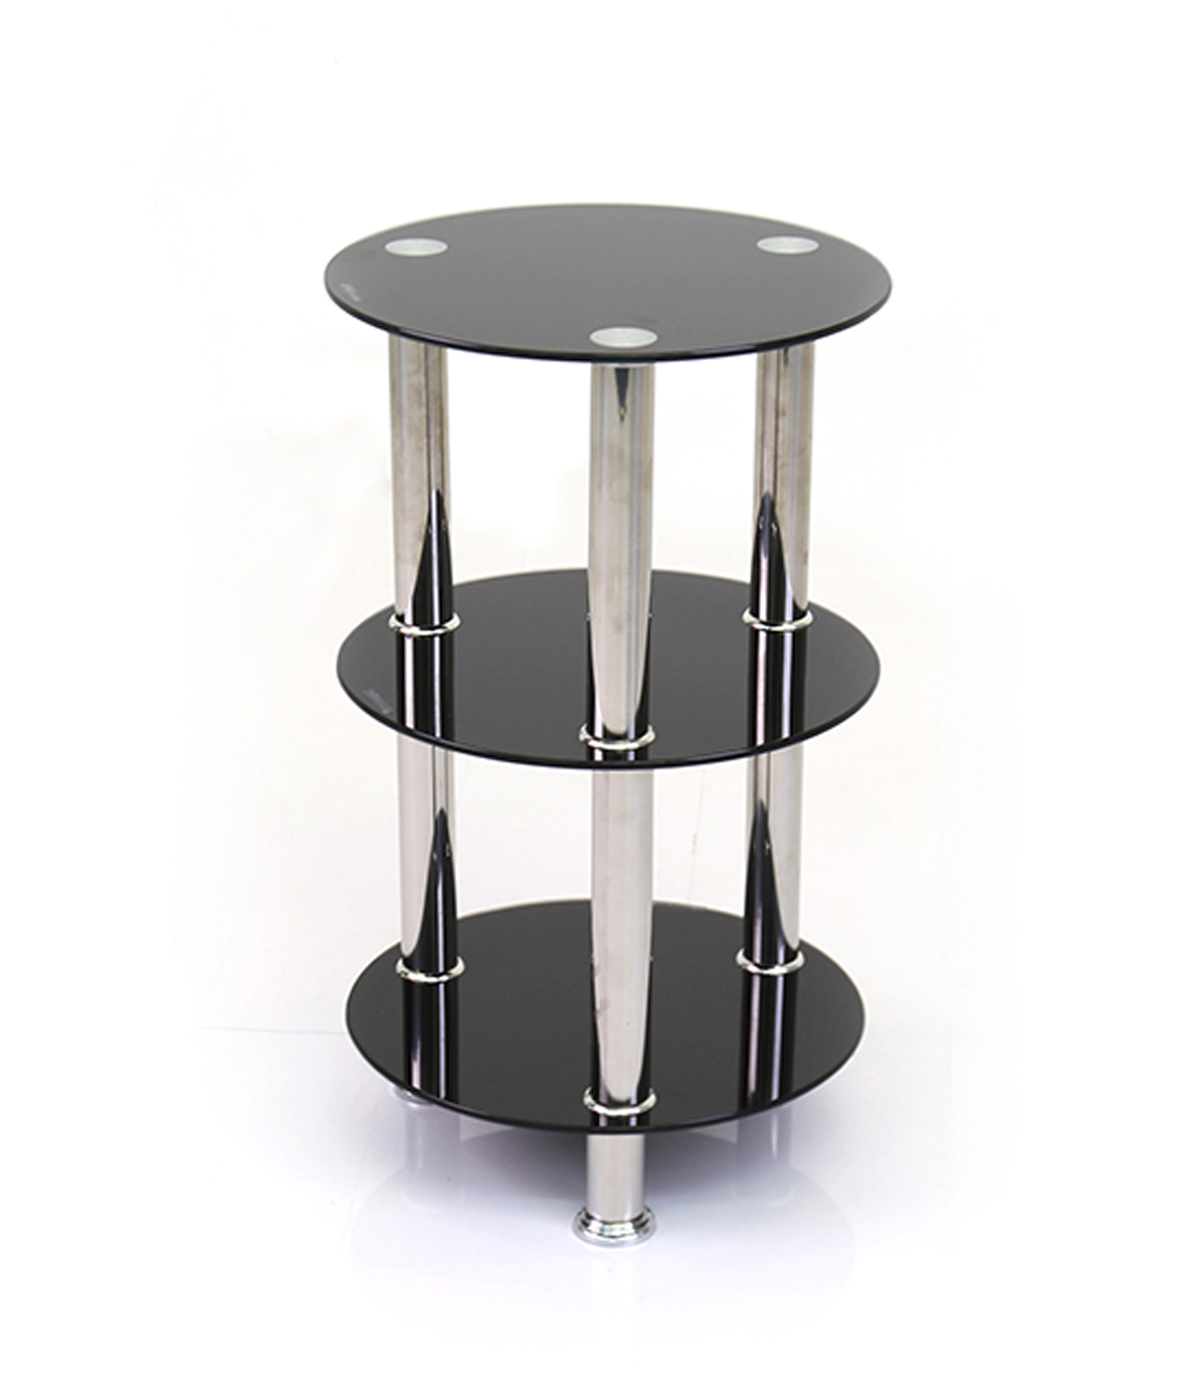 Abbey Black Round Glass and Chrome 3 Tier Stand